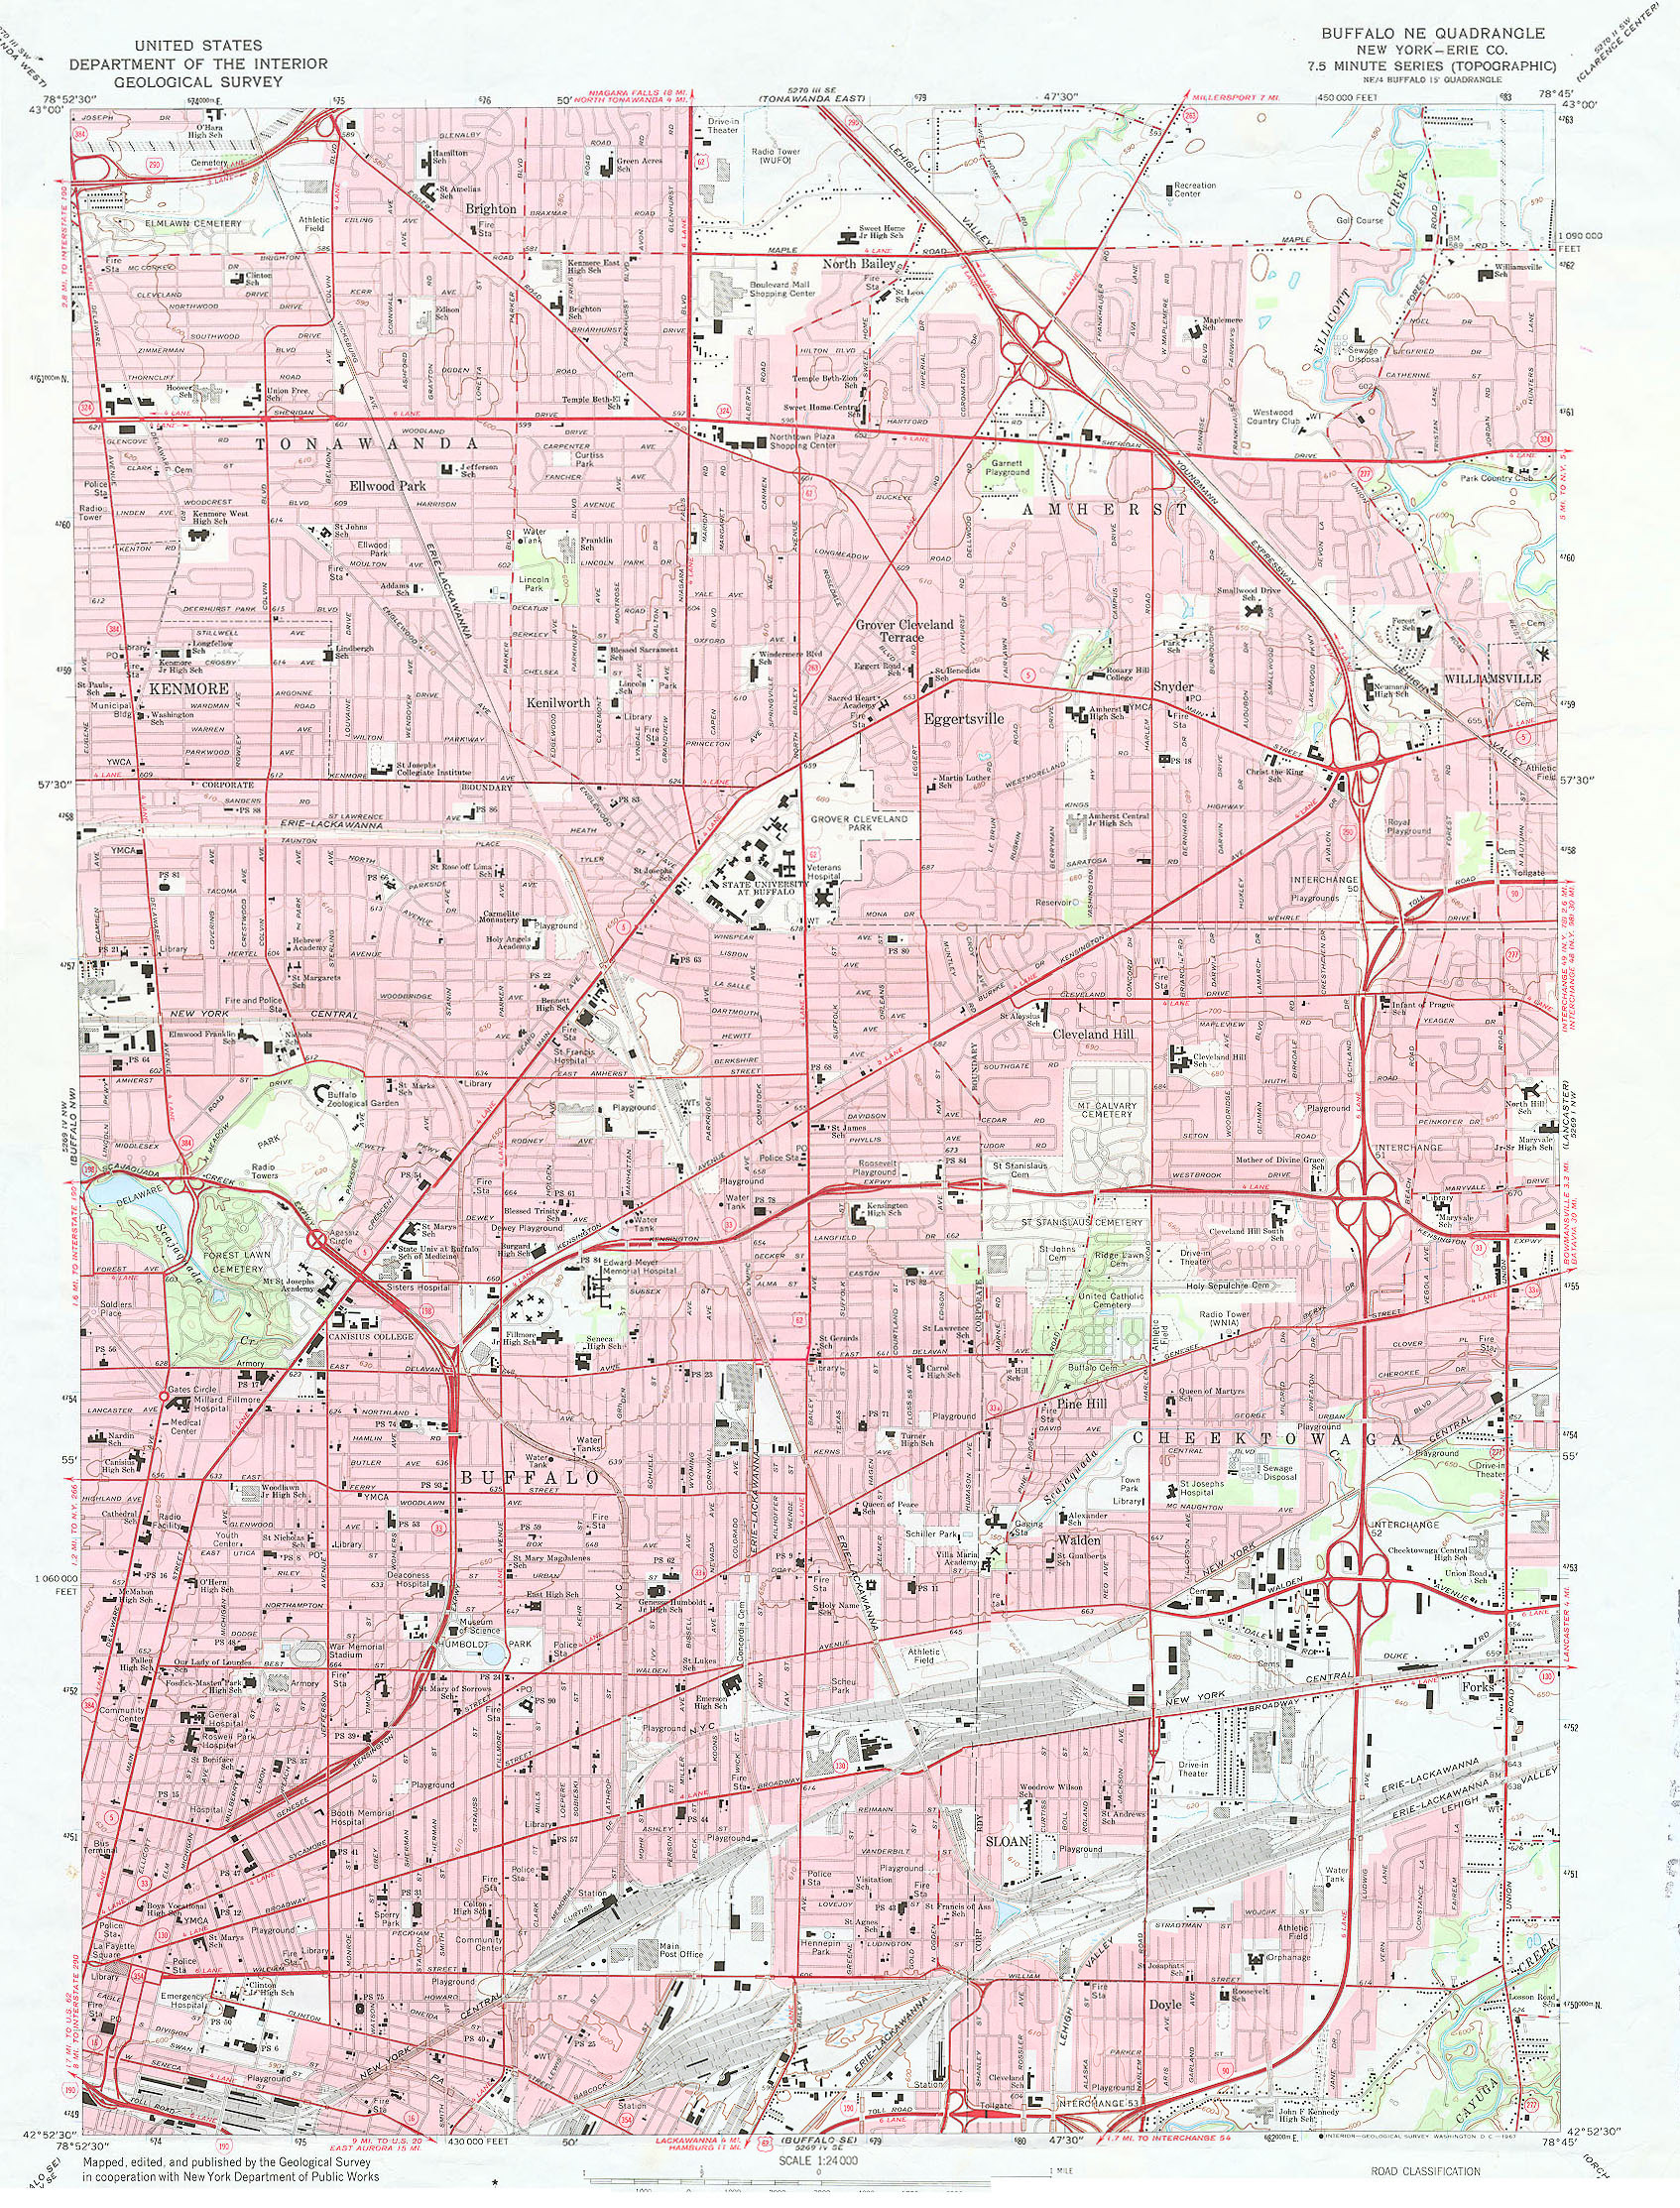 Topographic Maps University At Buffalo Libraries - Usgs quad maps